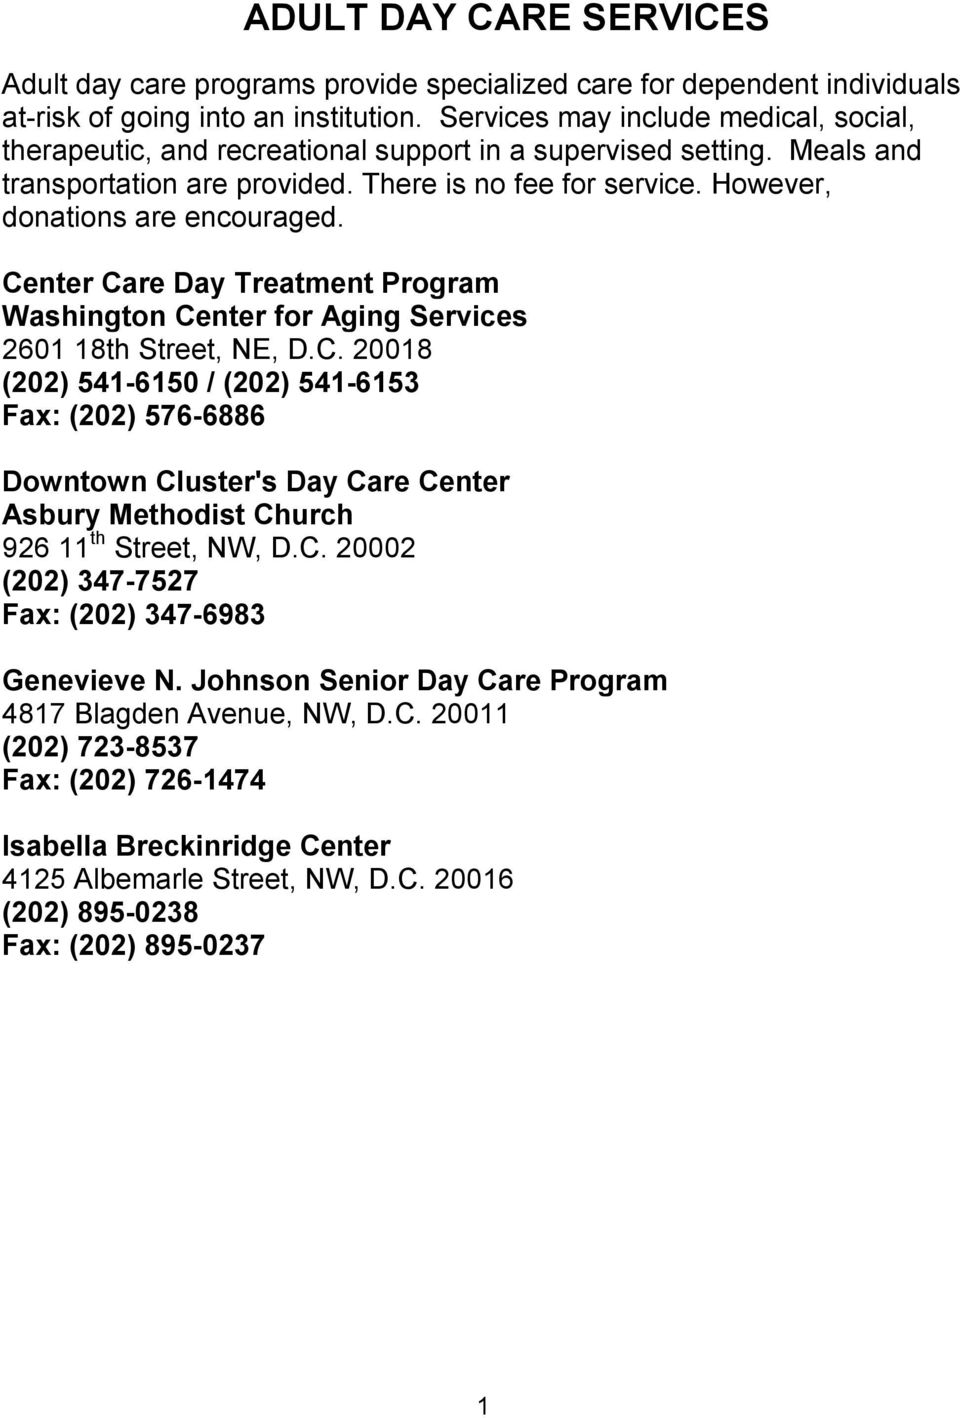 However, donations are encouraged. Center Care Day Treatment Program Washington Center for Aging Services 2601 18th Street, NE, D.C. 20018 (202) 541-6150 / (202) 541-6153 Fax: (202) 576-6886 Downtown Cluster's Day Care Center Asbury Methodist Church 926 11 th Street, NW, D.